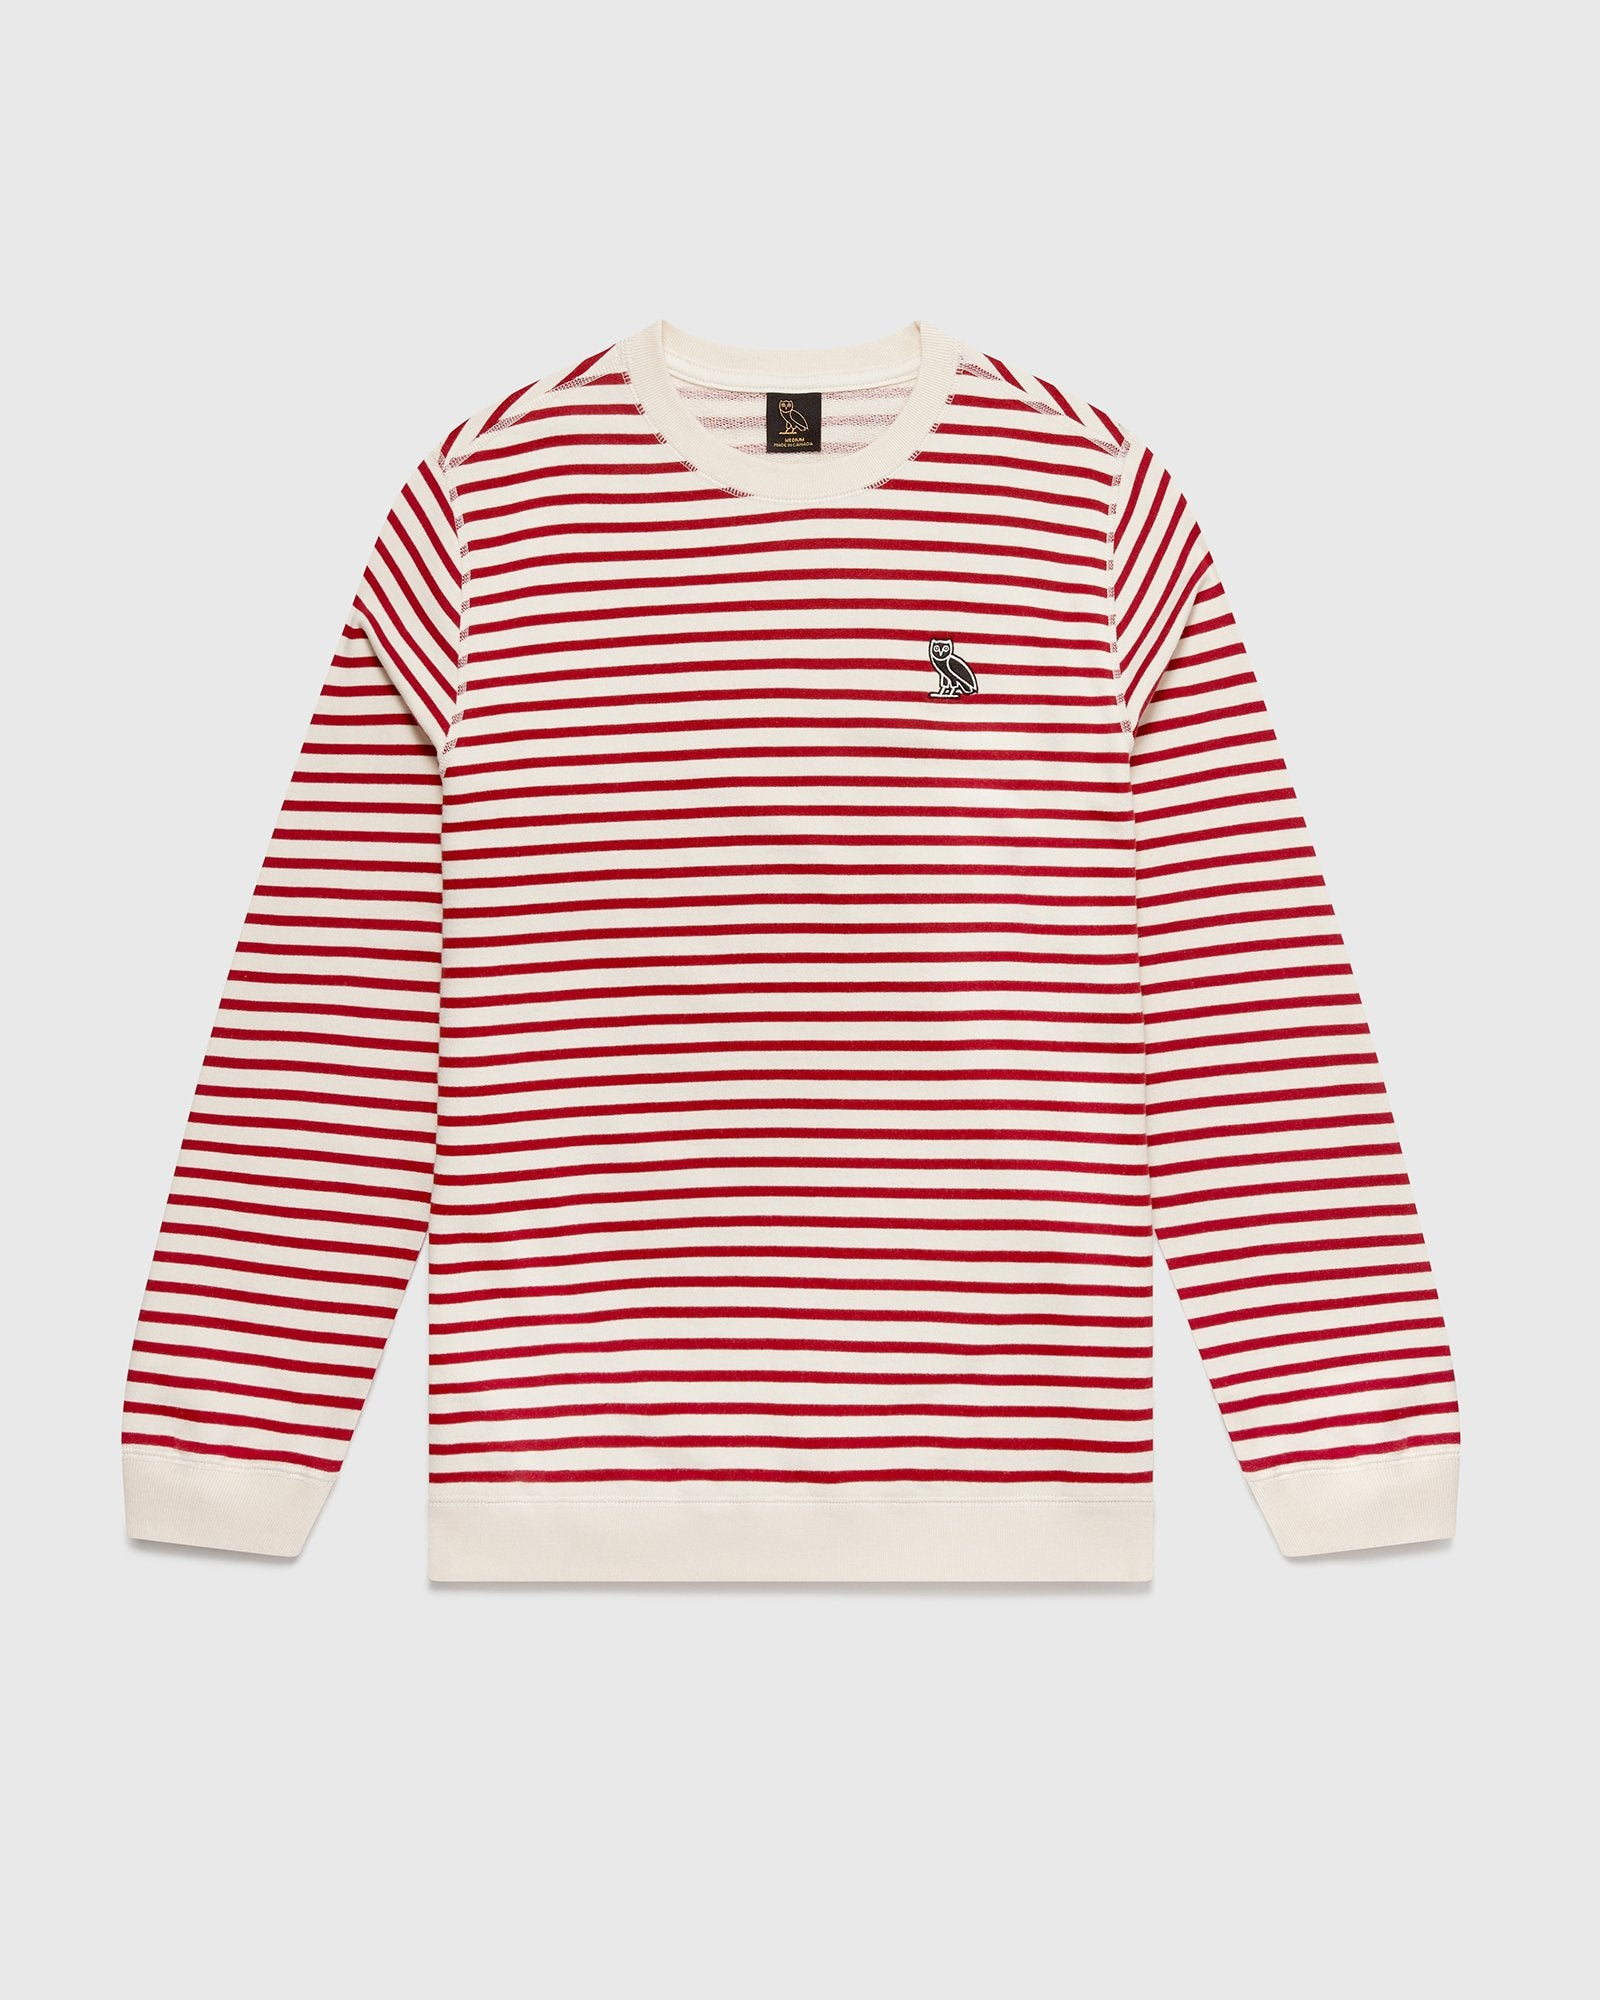 NAUTICAL STRIPE CREWNECK - RED/CREAM IMAGE #1